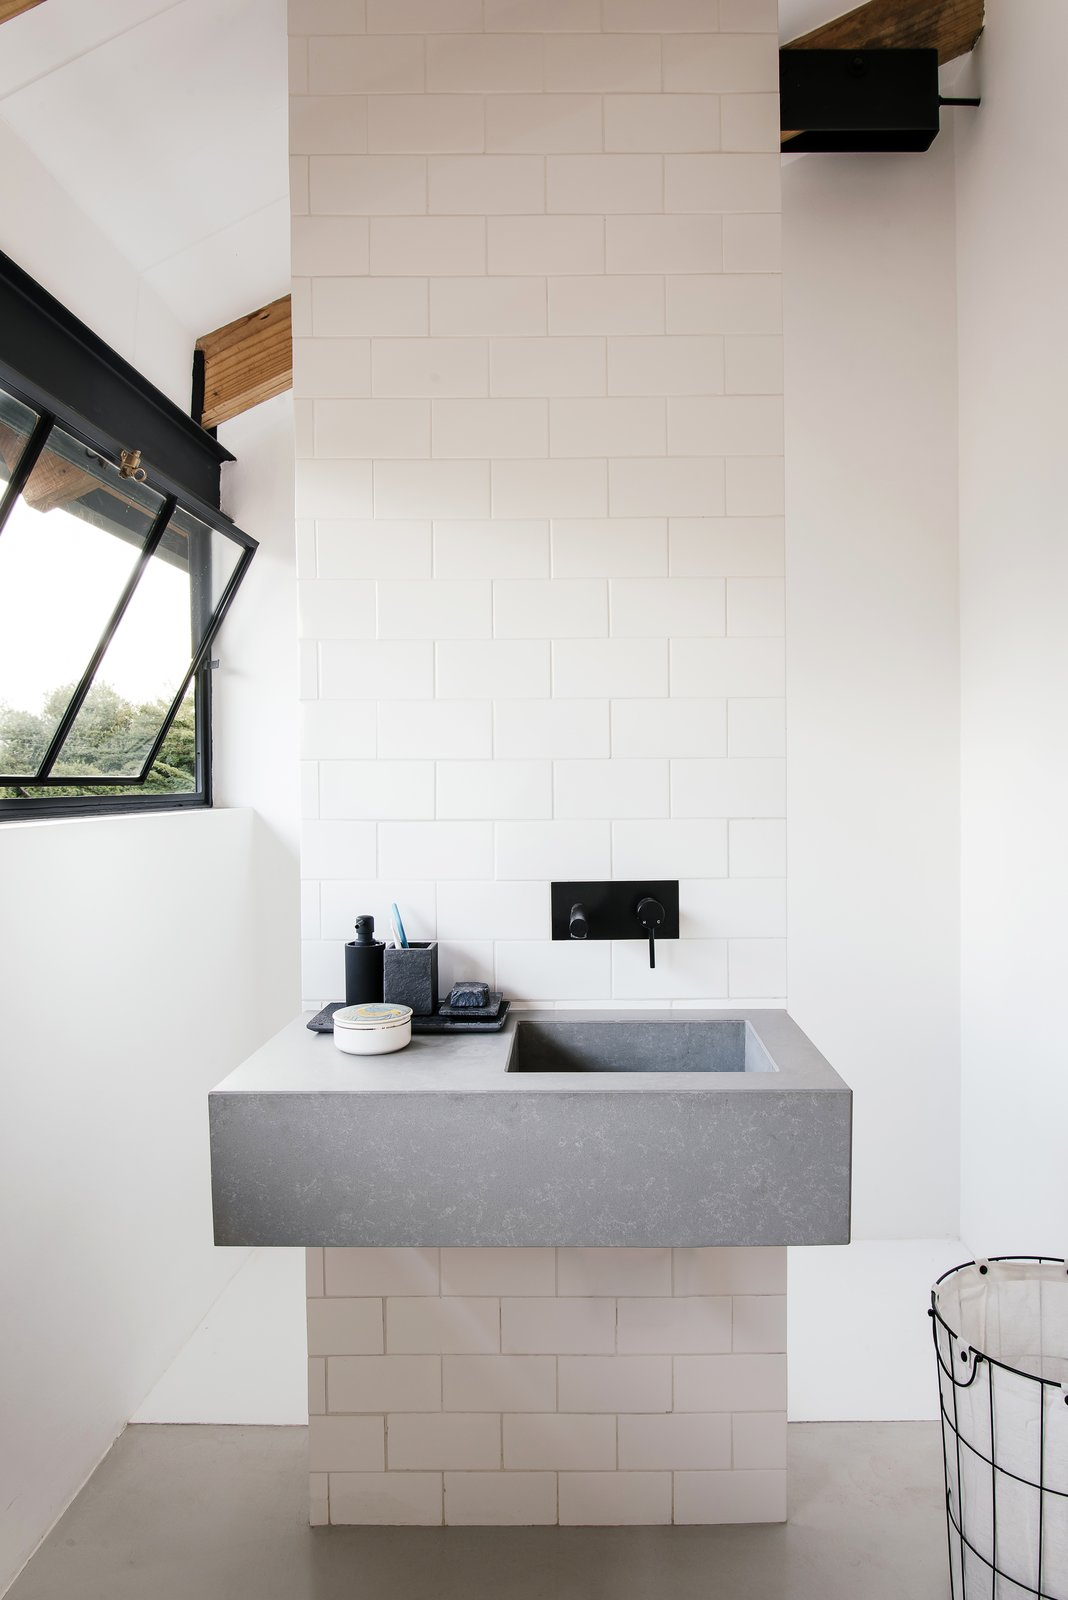 Bath, Concrete, Engineered Quartz, Vessel, Ceramic Tile, and Drop In A look at the simple, modern bathroom with a monolithic sink.    Best Bath Ceramic Tile Vessel Photos from A South African Architect Designs an Off-Grid, Modern Home For Her Parents